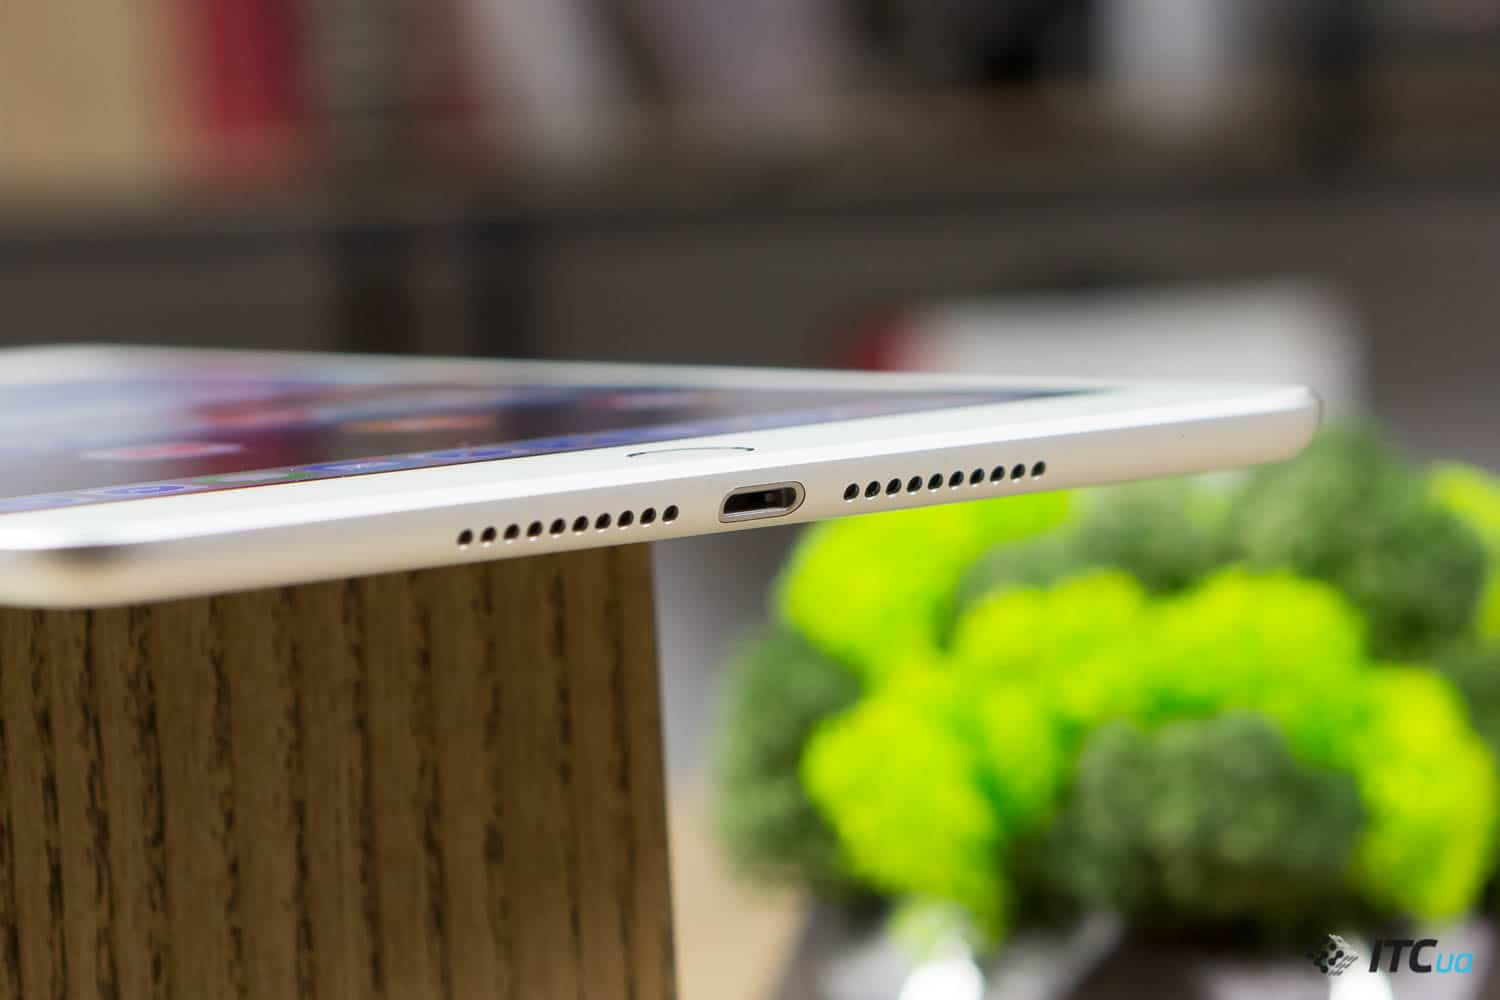 iPad mini (5 Gen): Apple's updated compact tablet